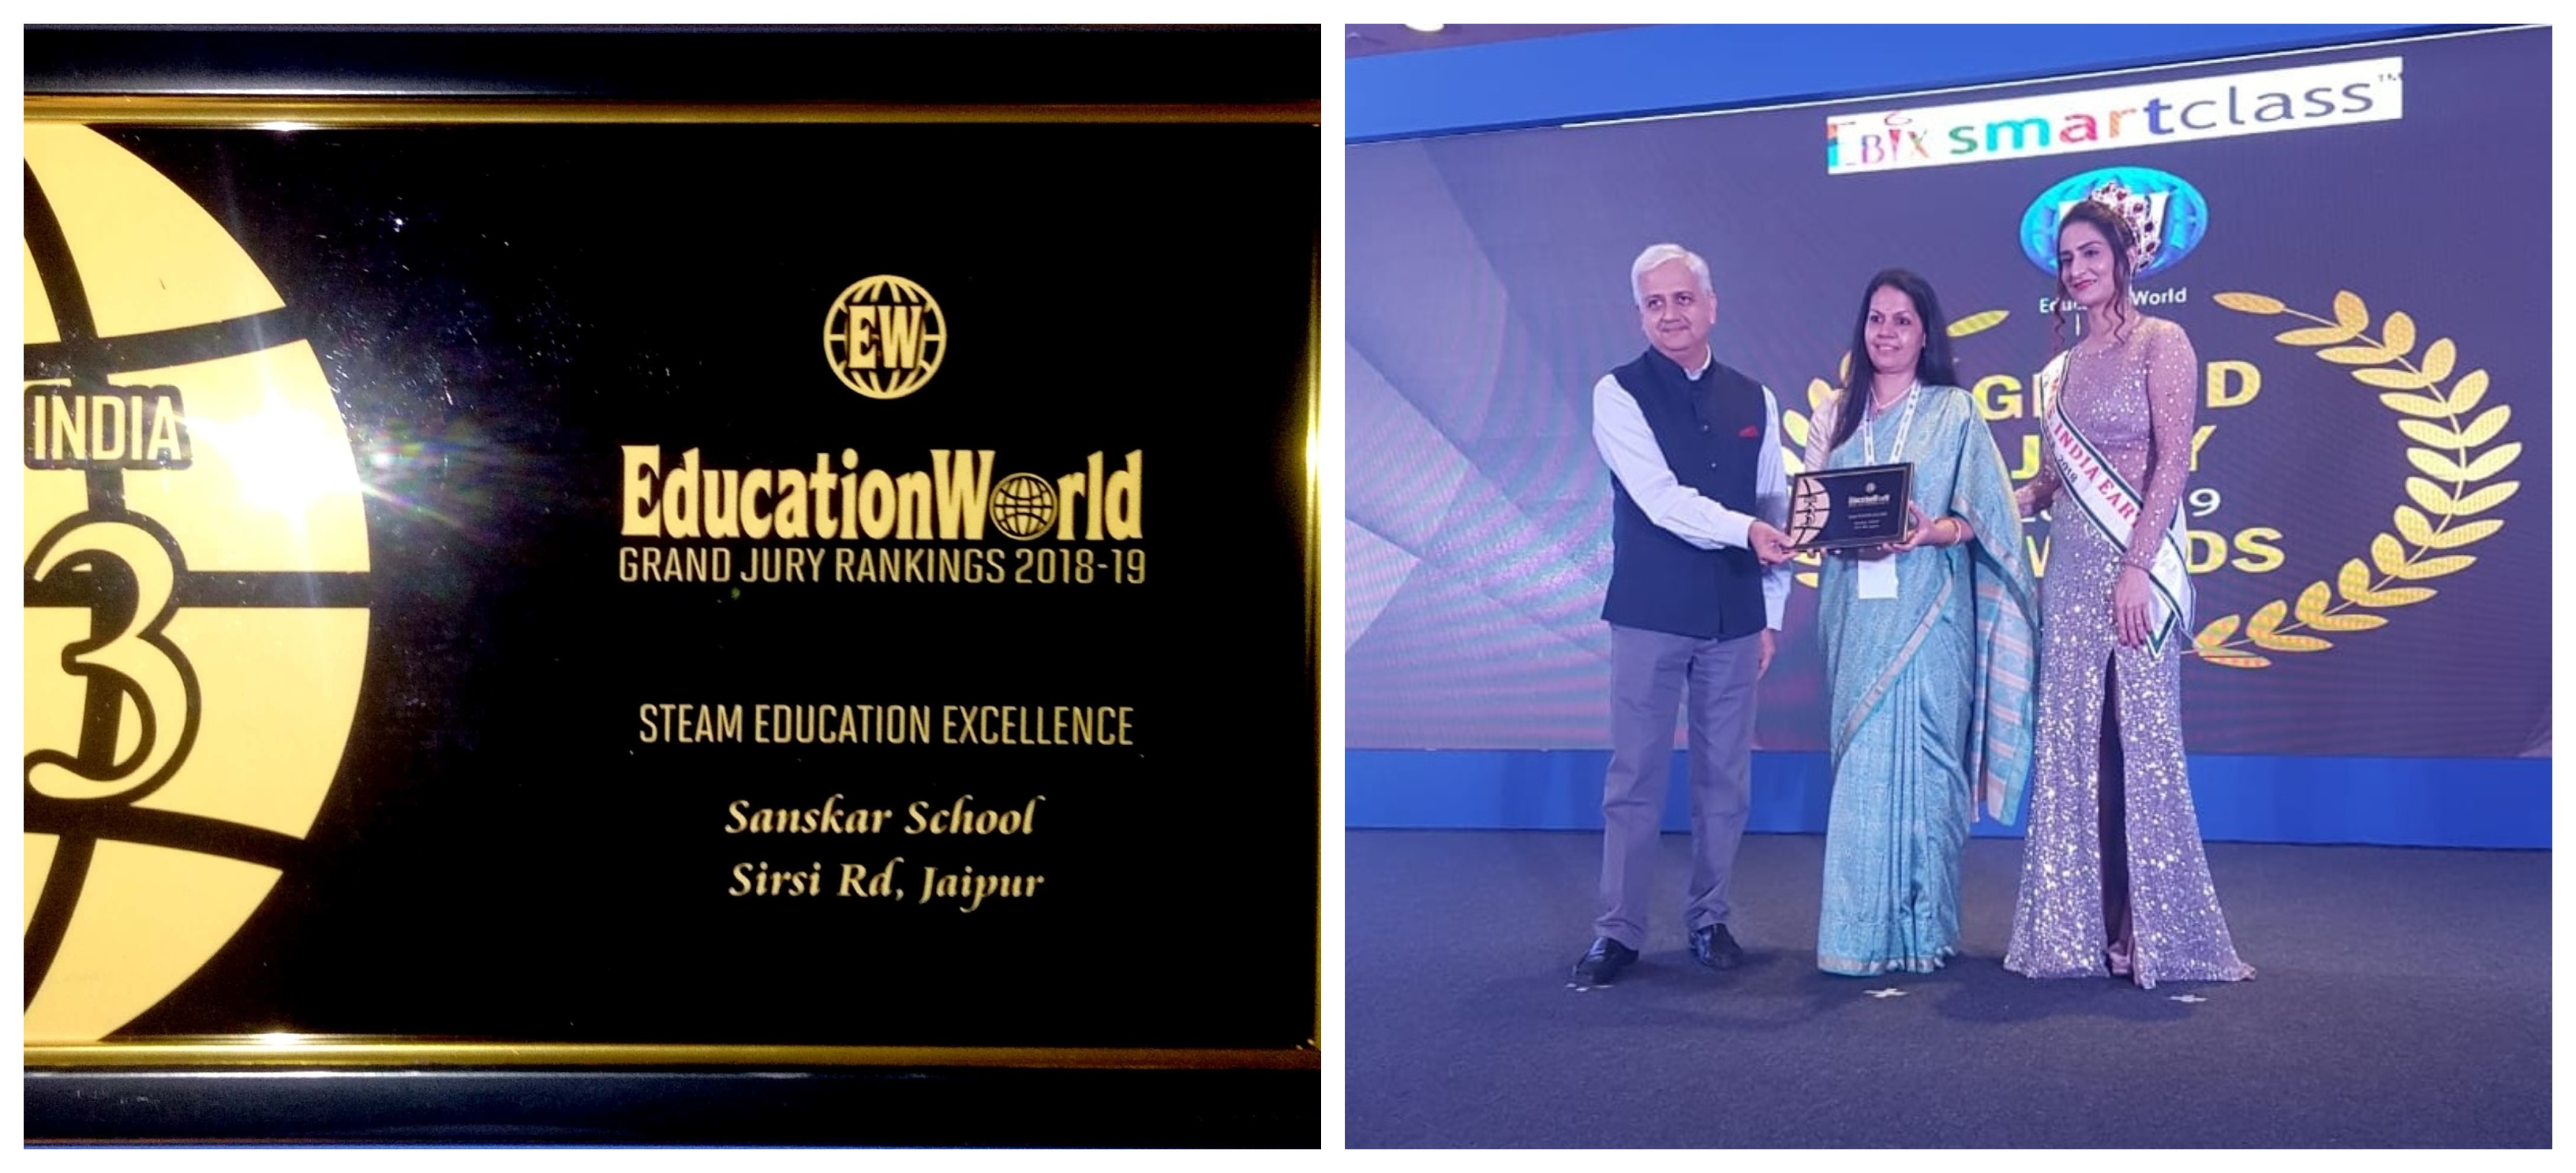 Sanskar School receives Education World Grand Jury Award 2018